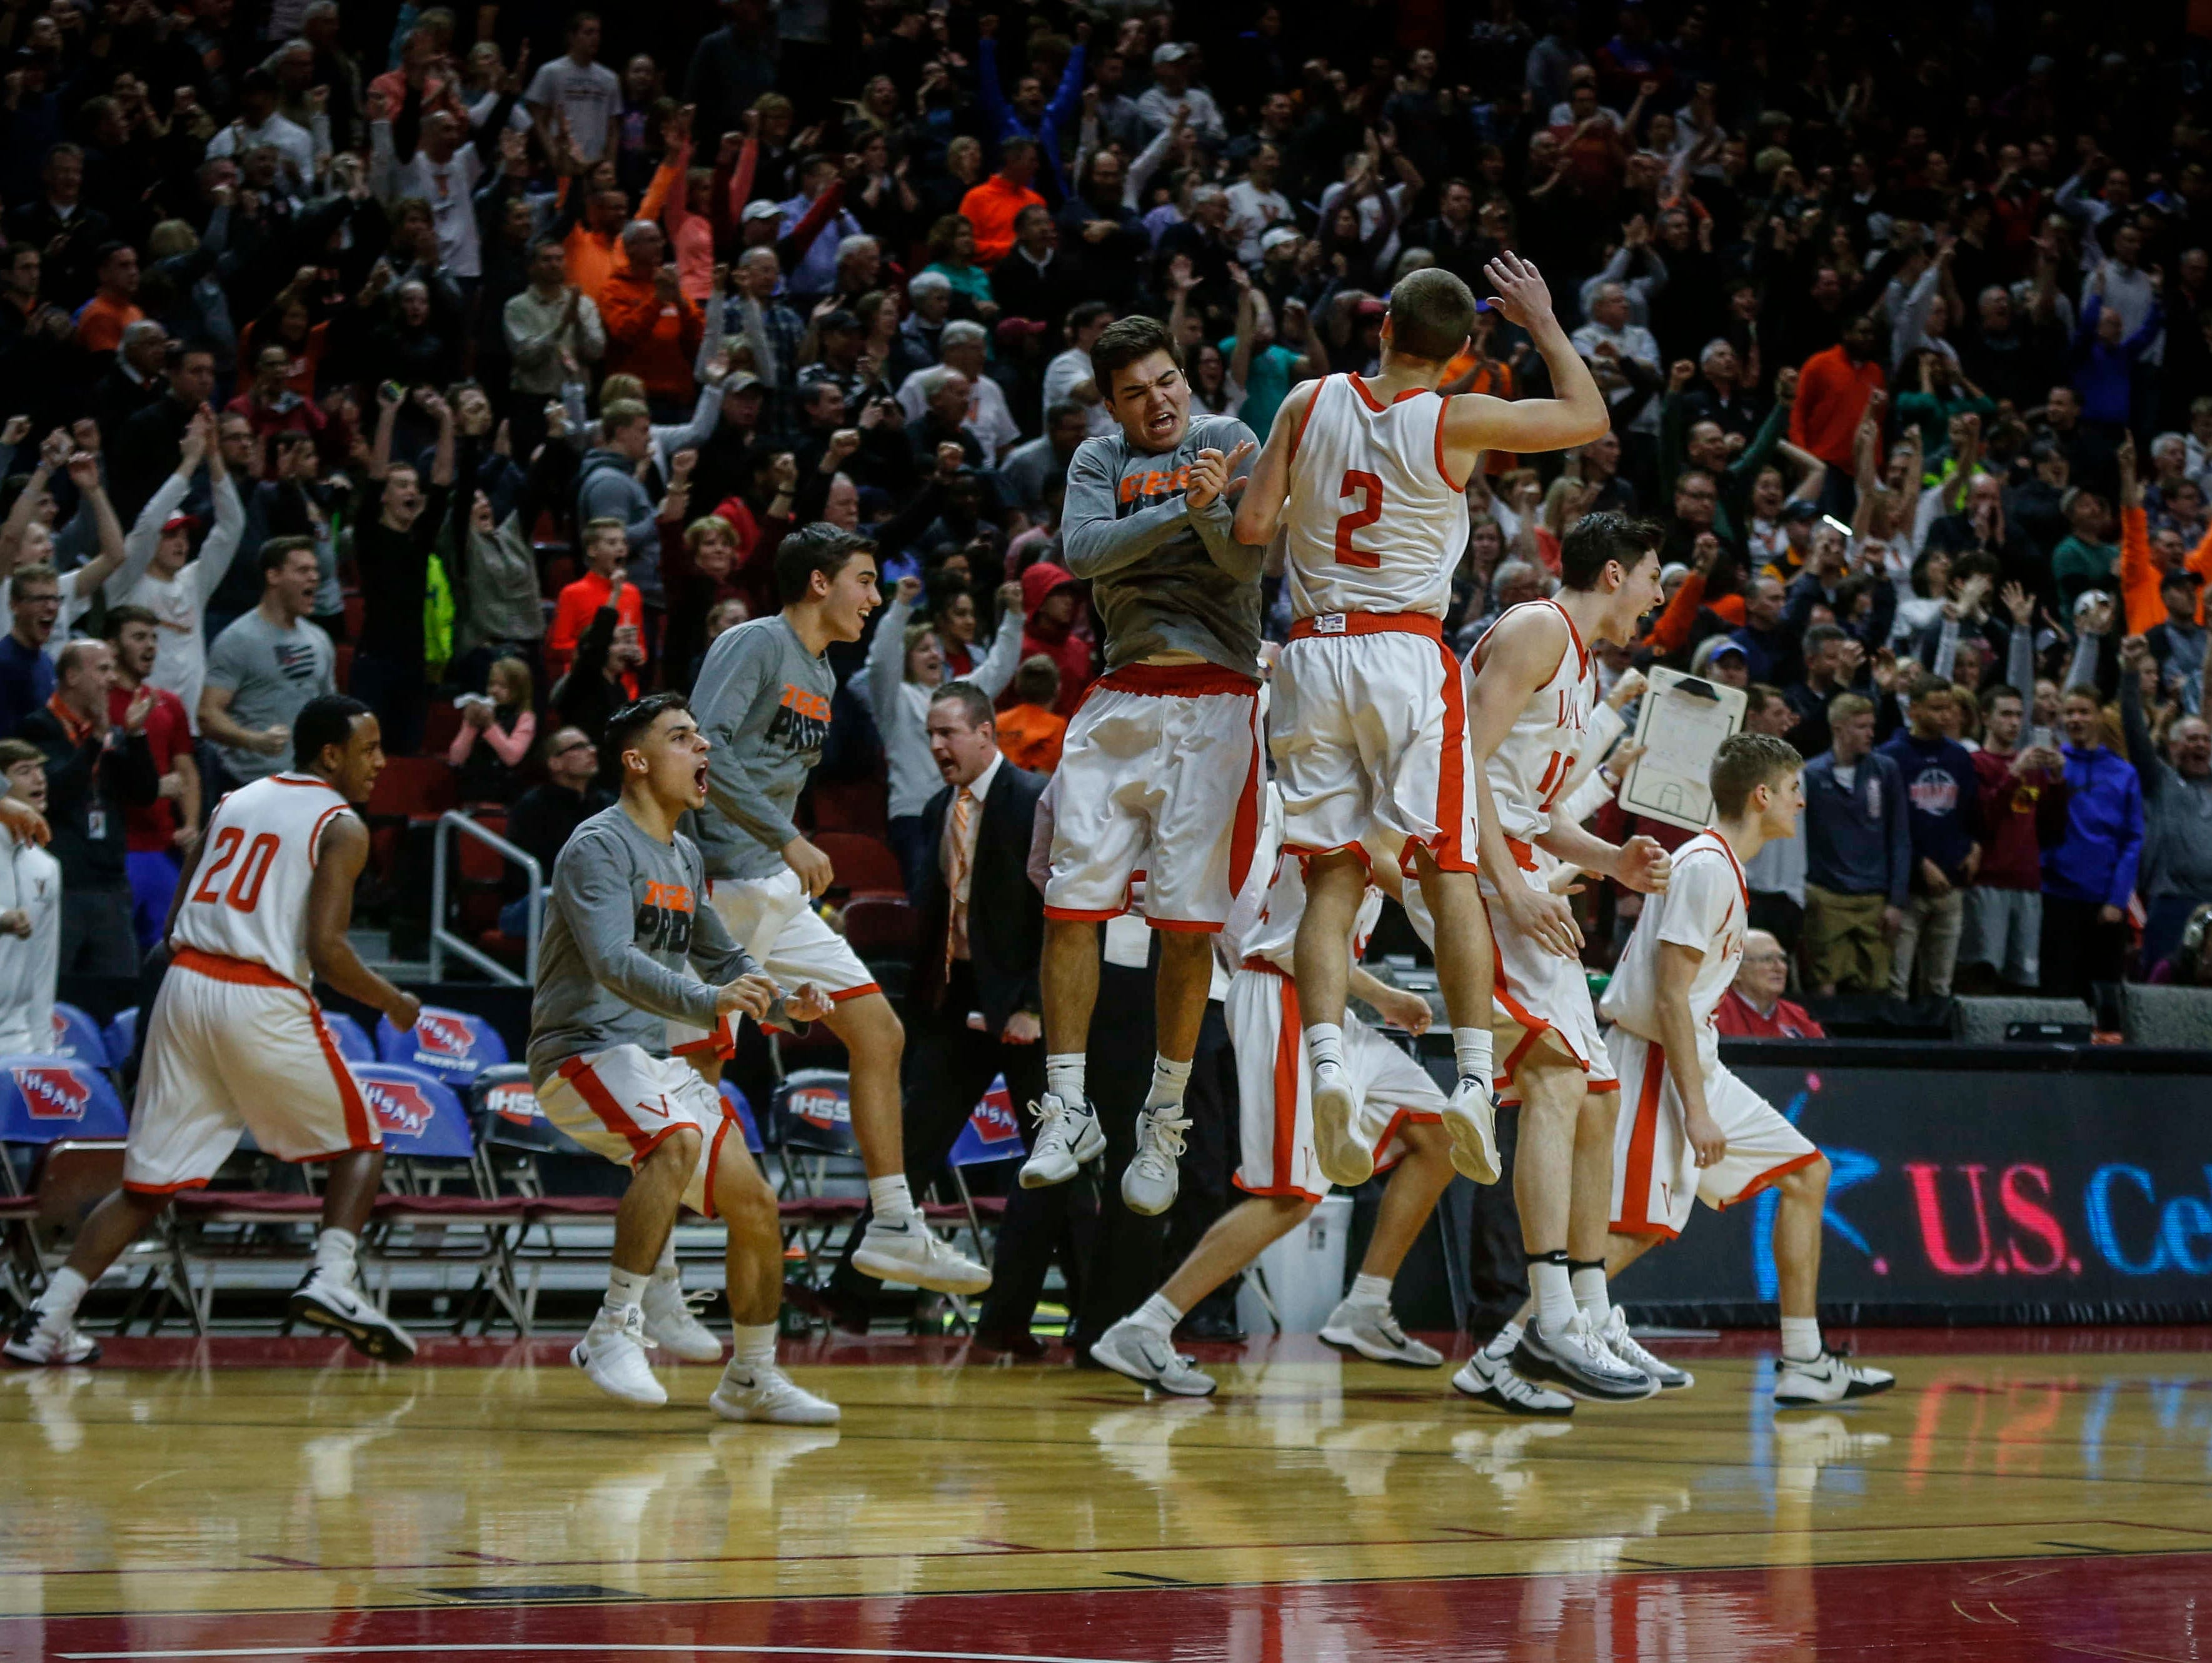 Members of the West Des Moines Valley basketball team celebrate after a win over Des Moines North during the Iowa High School state basketball tournament at Wells Fargo Arena in Des Moines on Wednesday, March 8, 2017.